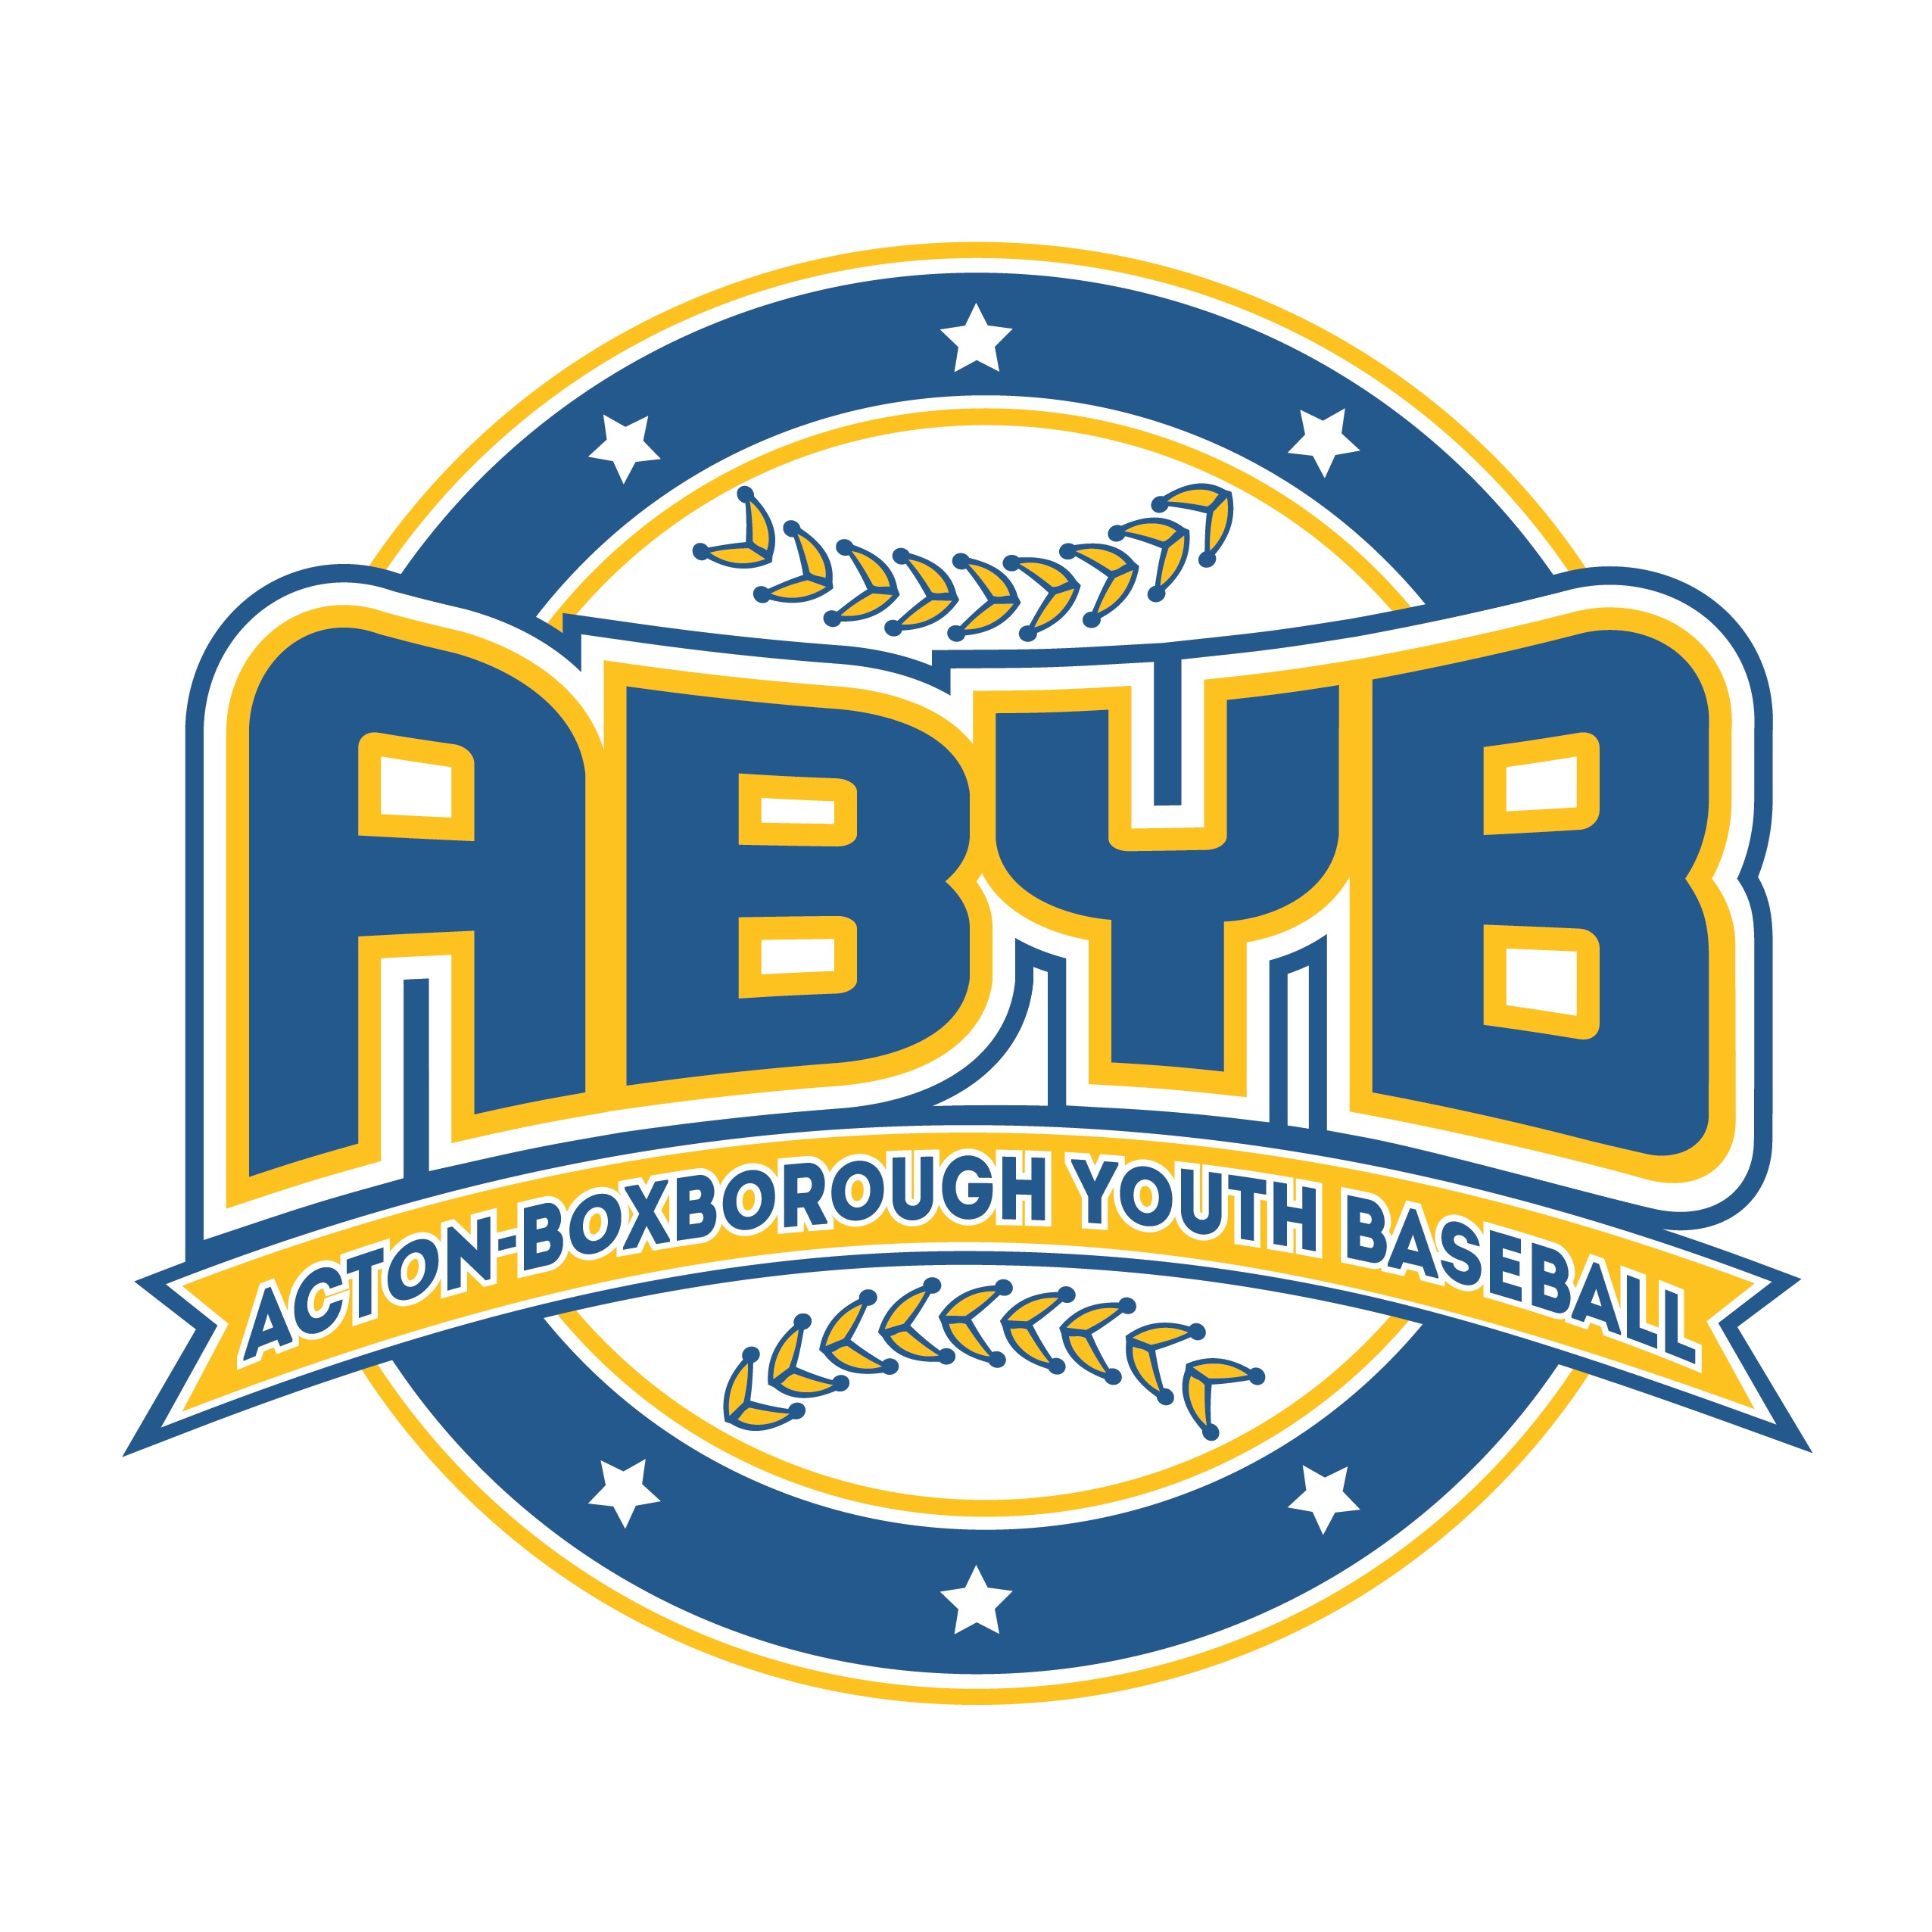 Acton-Boxborough Youth Baseball, Baseball, Run, Field